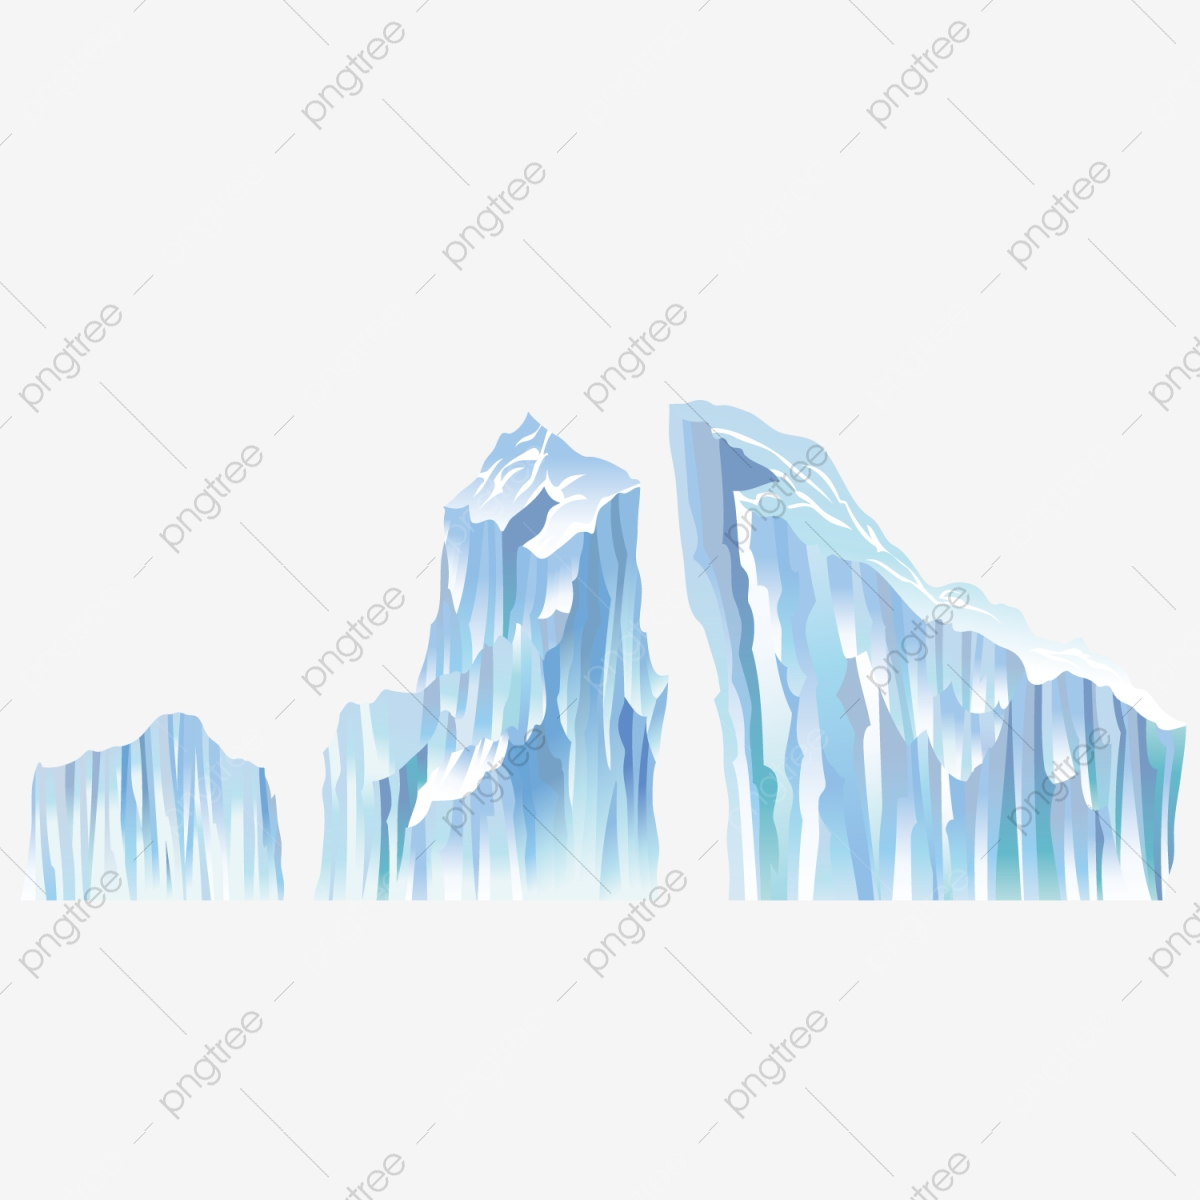 Download for free png. Glacier clipart tall mountain